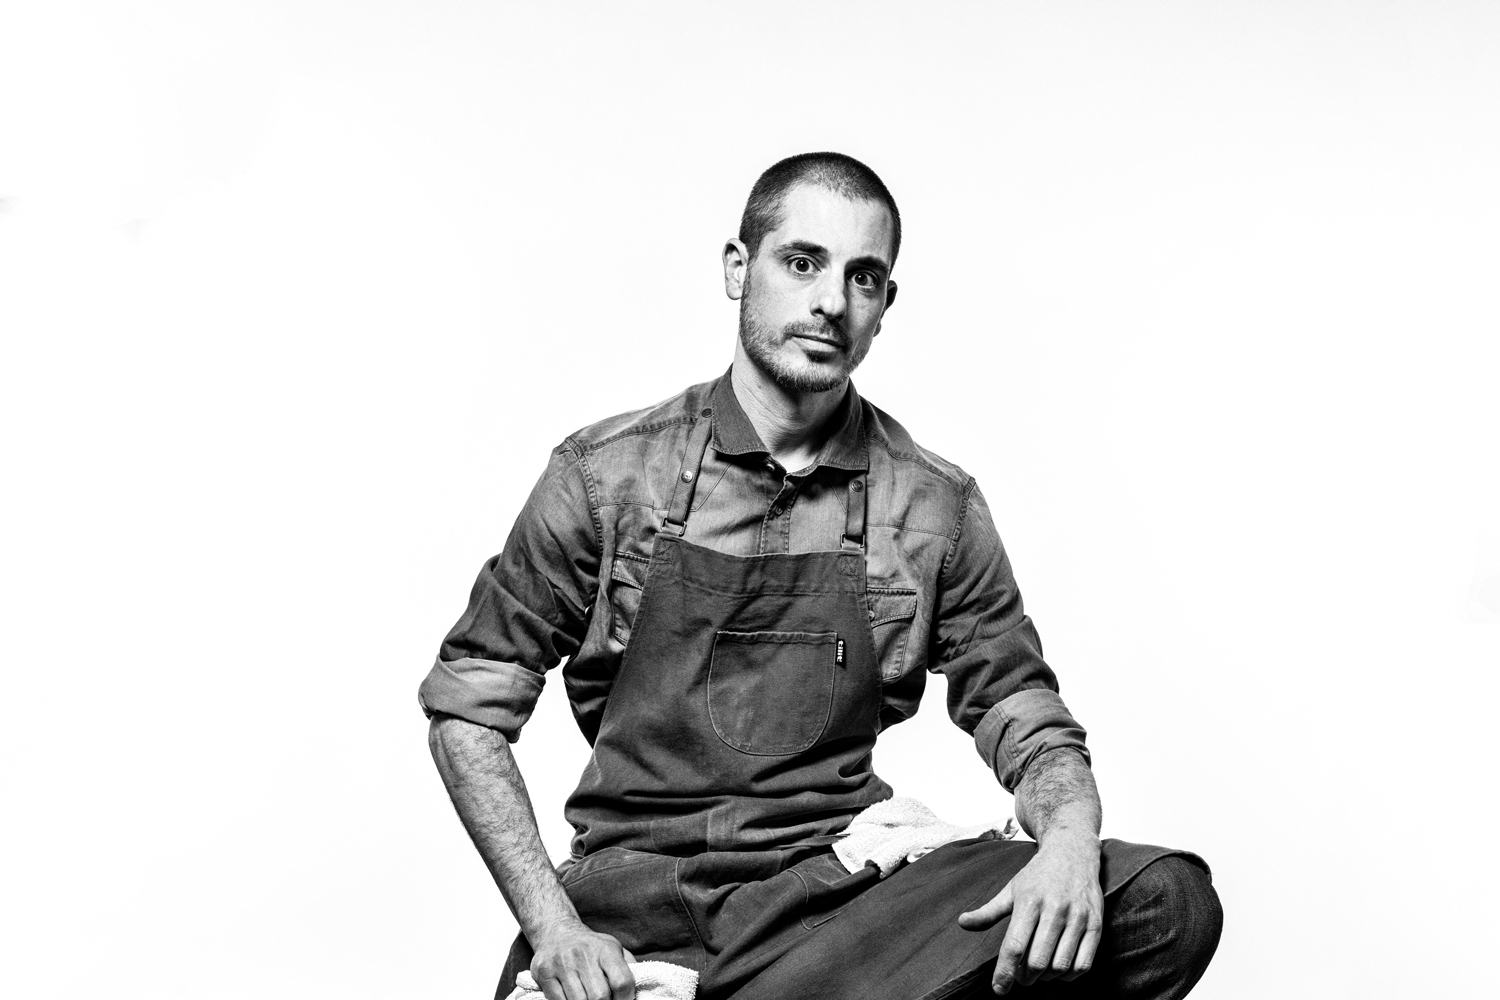 Studio portrait shoot with Anthony Andiario, chef and restaruant owner. Shot for the April 2019 issue of Philadelphia Magazine. Photo by Kyle Kielinski